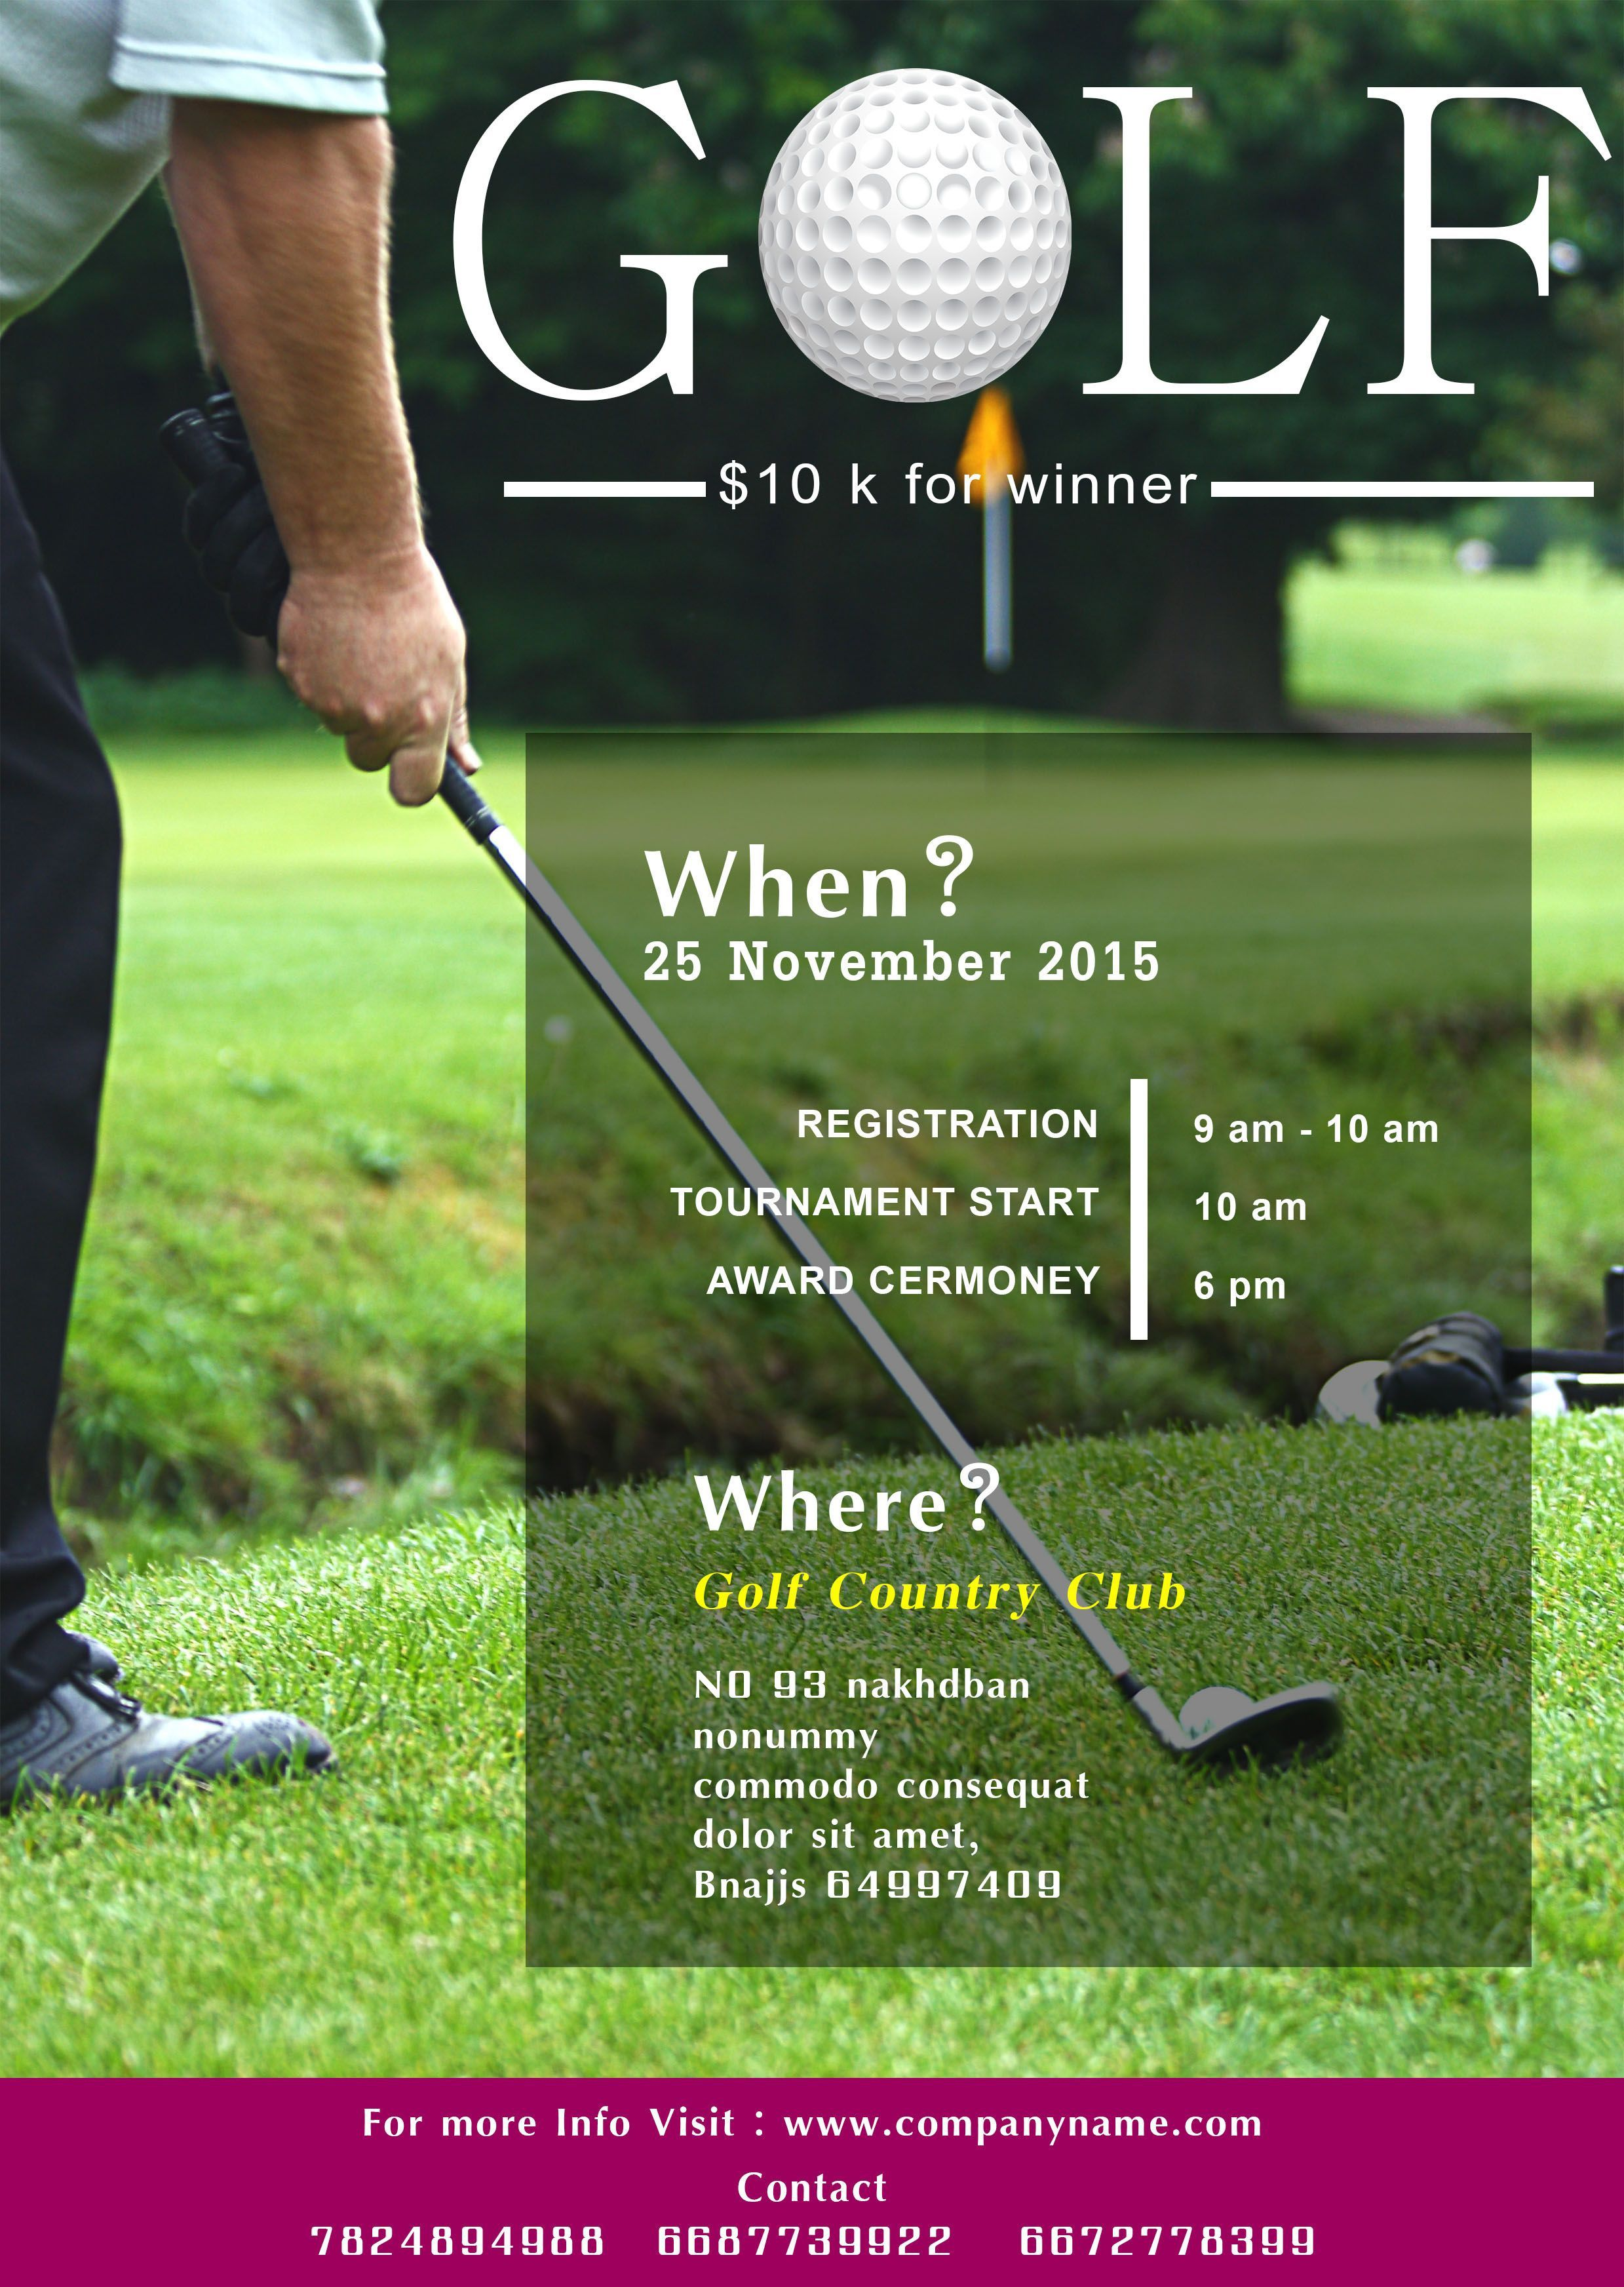 004 Dreaded Free Charity Golf Tournament Flyer Template High Resolution Full